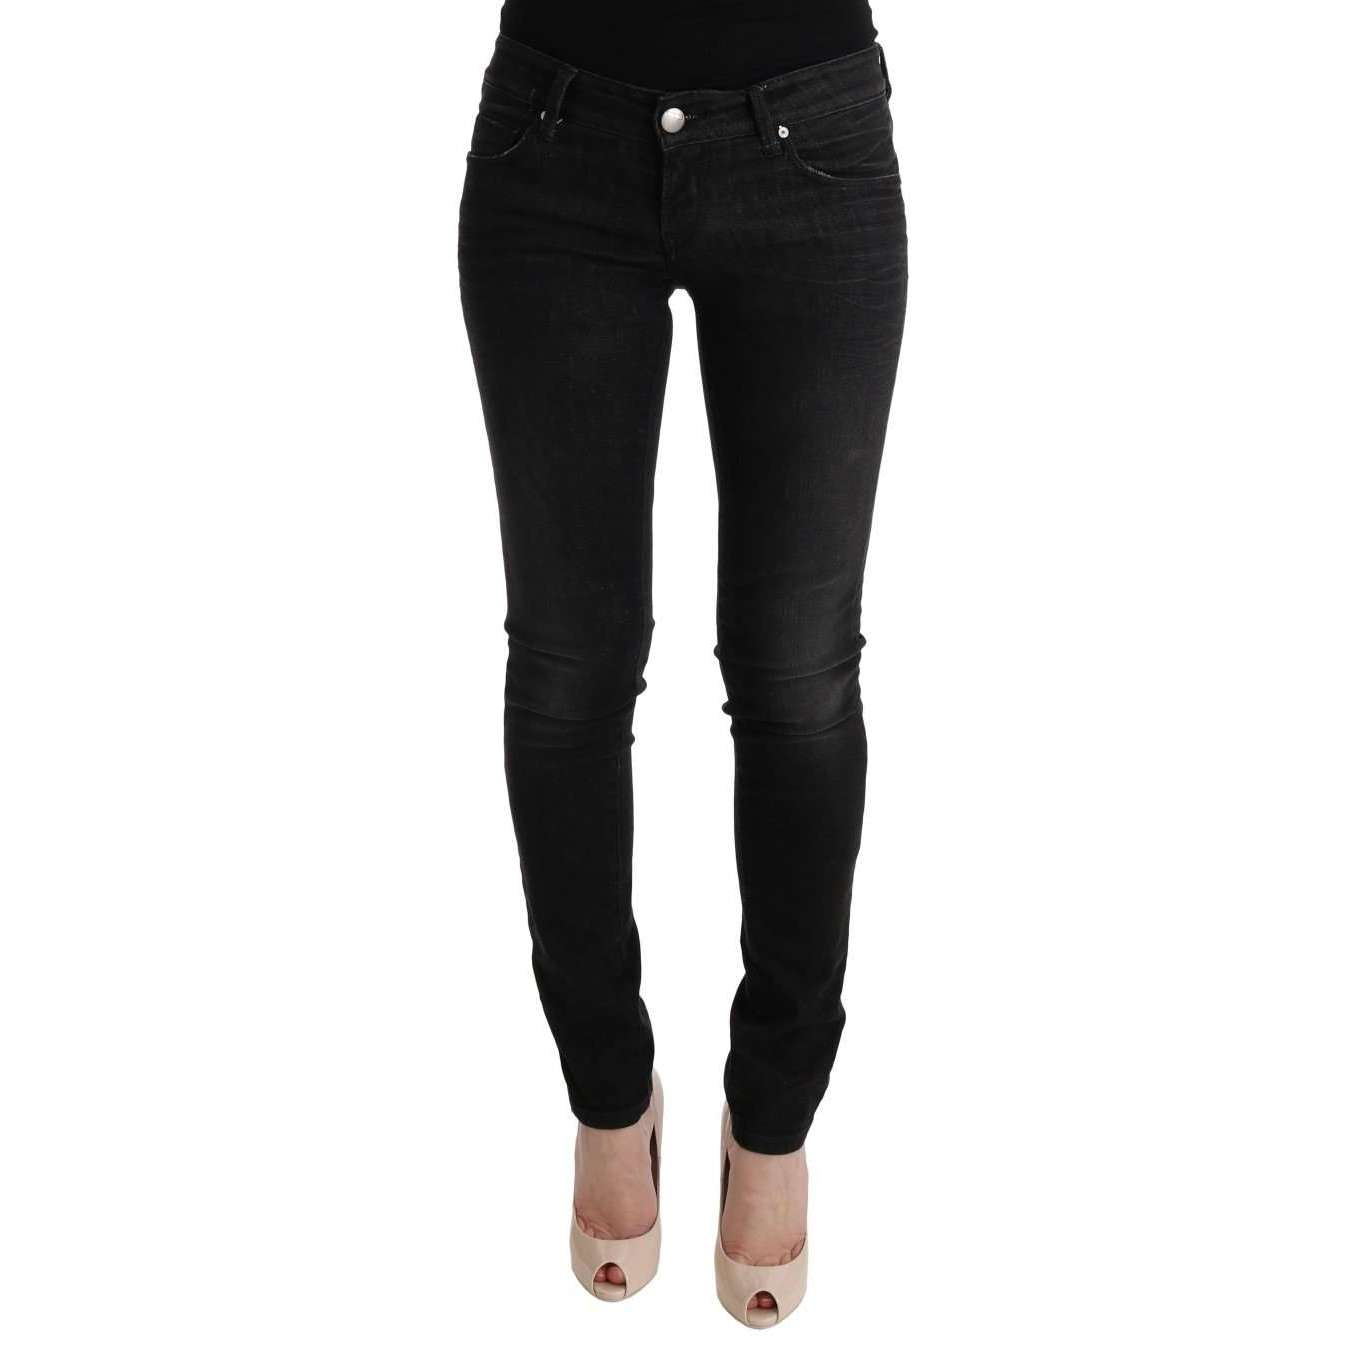 Black Denim Cotton Bottoms Slim Fit Jeans